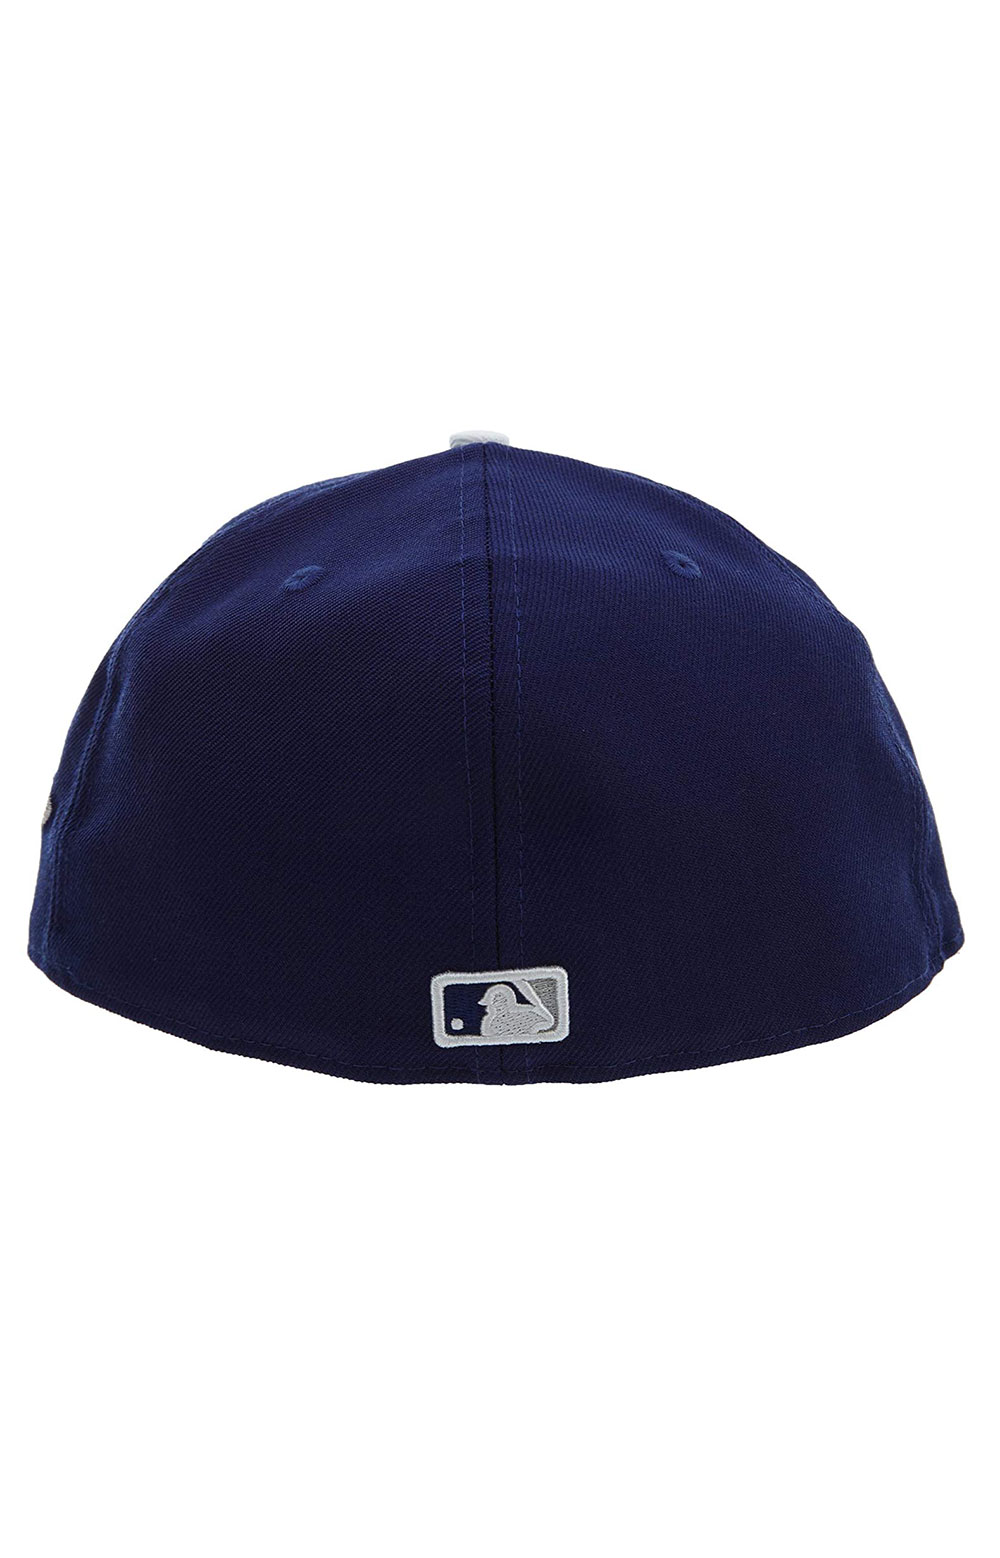 LA Dodgers 1988 World Series Wool 59Fifty Fitted Hat - Royal Blue  4